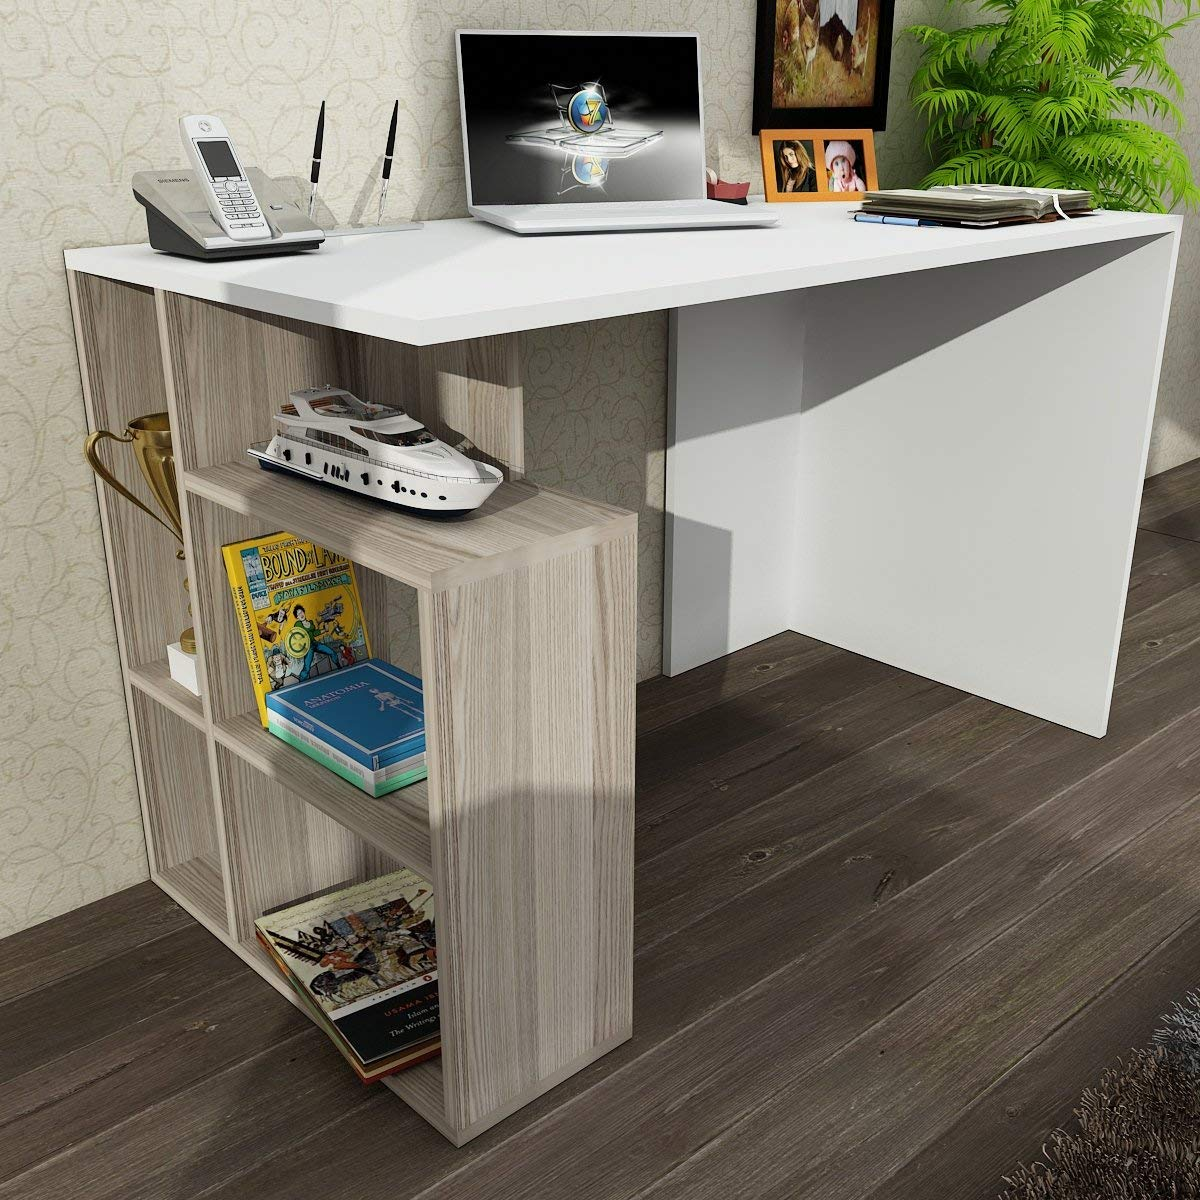 Writing Computer Desk Modern & Simple White Line Straight Flush Design Modern Flat Simple Study Desk Industrial Style Study & Laptop Table for Home, Office, Living Room, Study Room